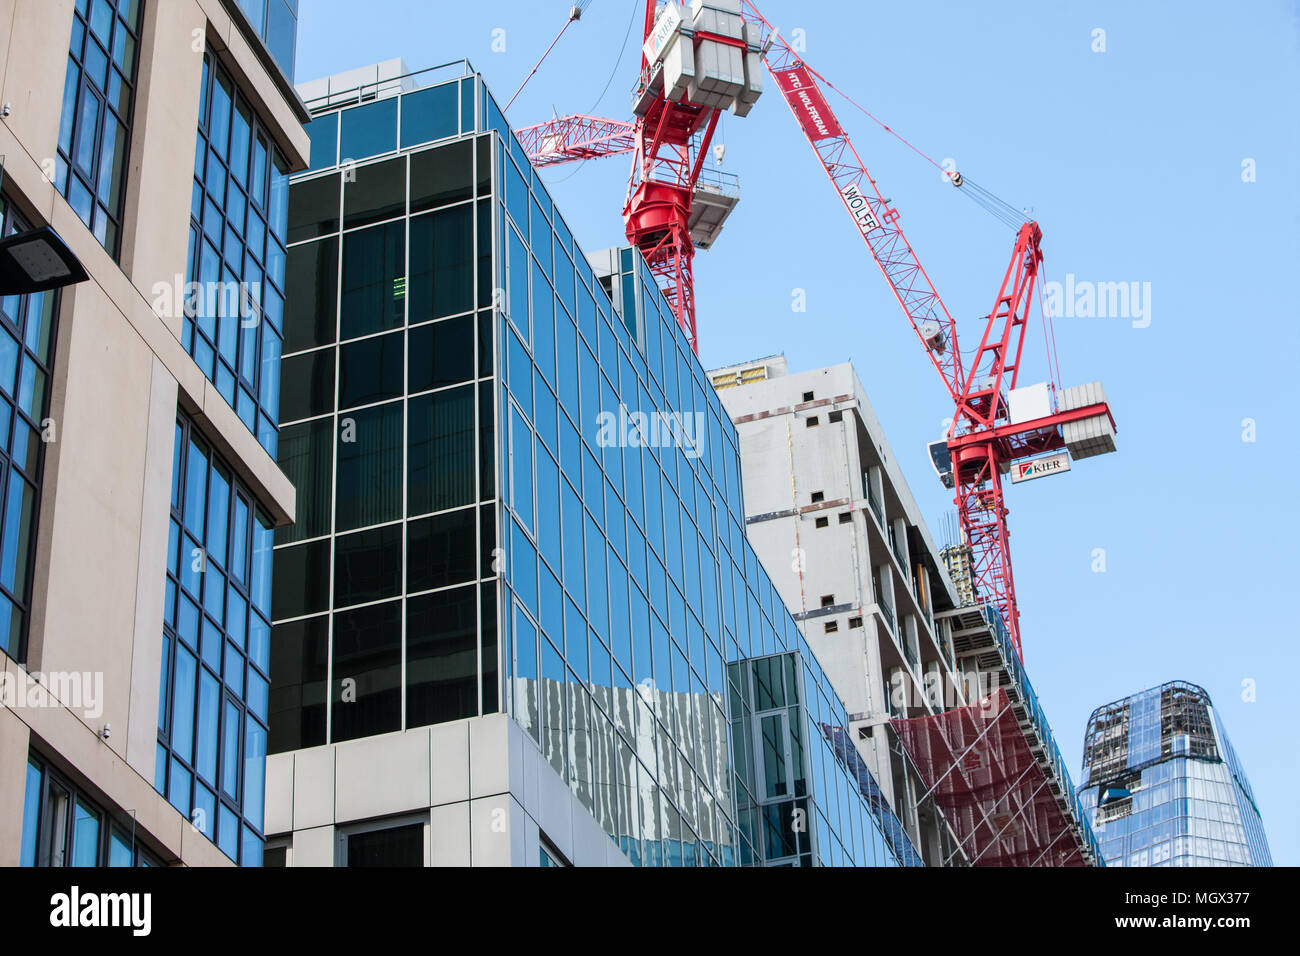 New,build,Construction,of,One Blackfriars, Blackfriars One,building,nearing,end,of,construction,phase,London,Great,Britain,GB,UK,U.K.,Europe,European, Stock Photo